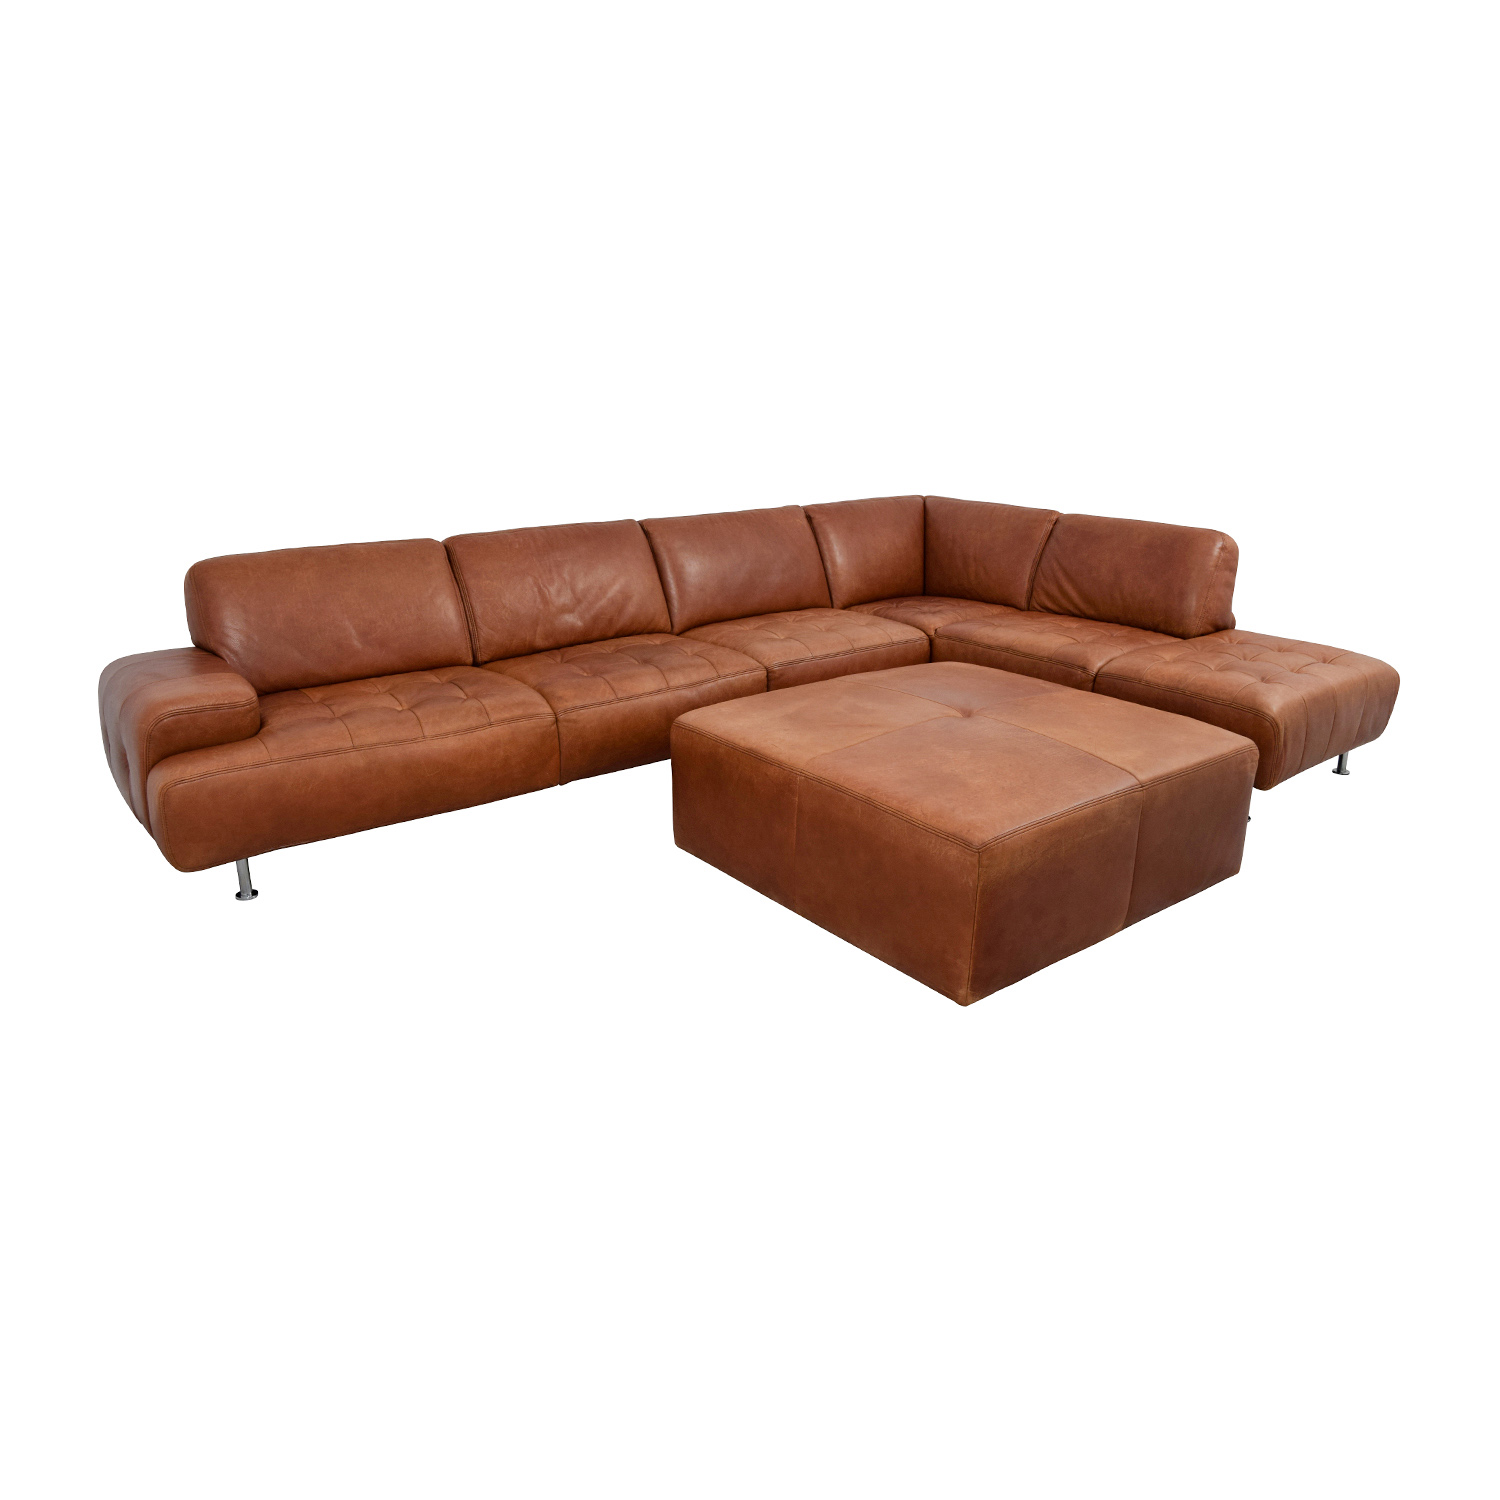 W. Schillig W. Schillig Leather Sectional with Ottoman Clay